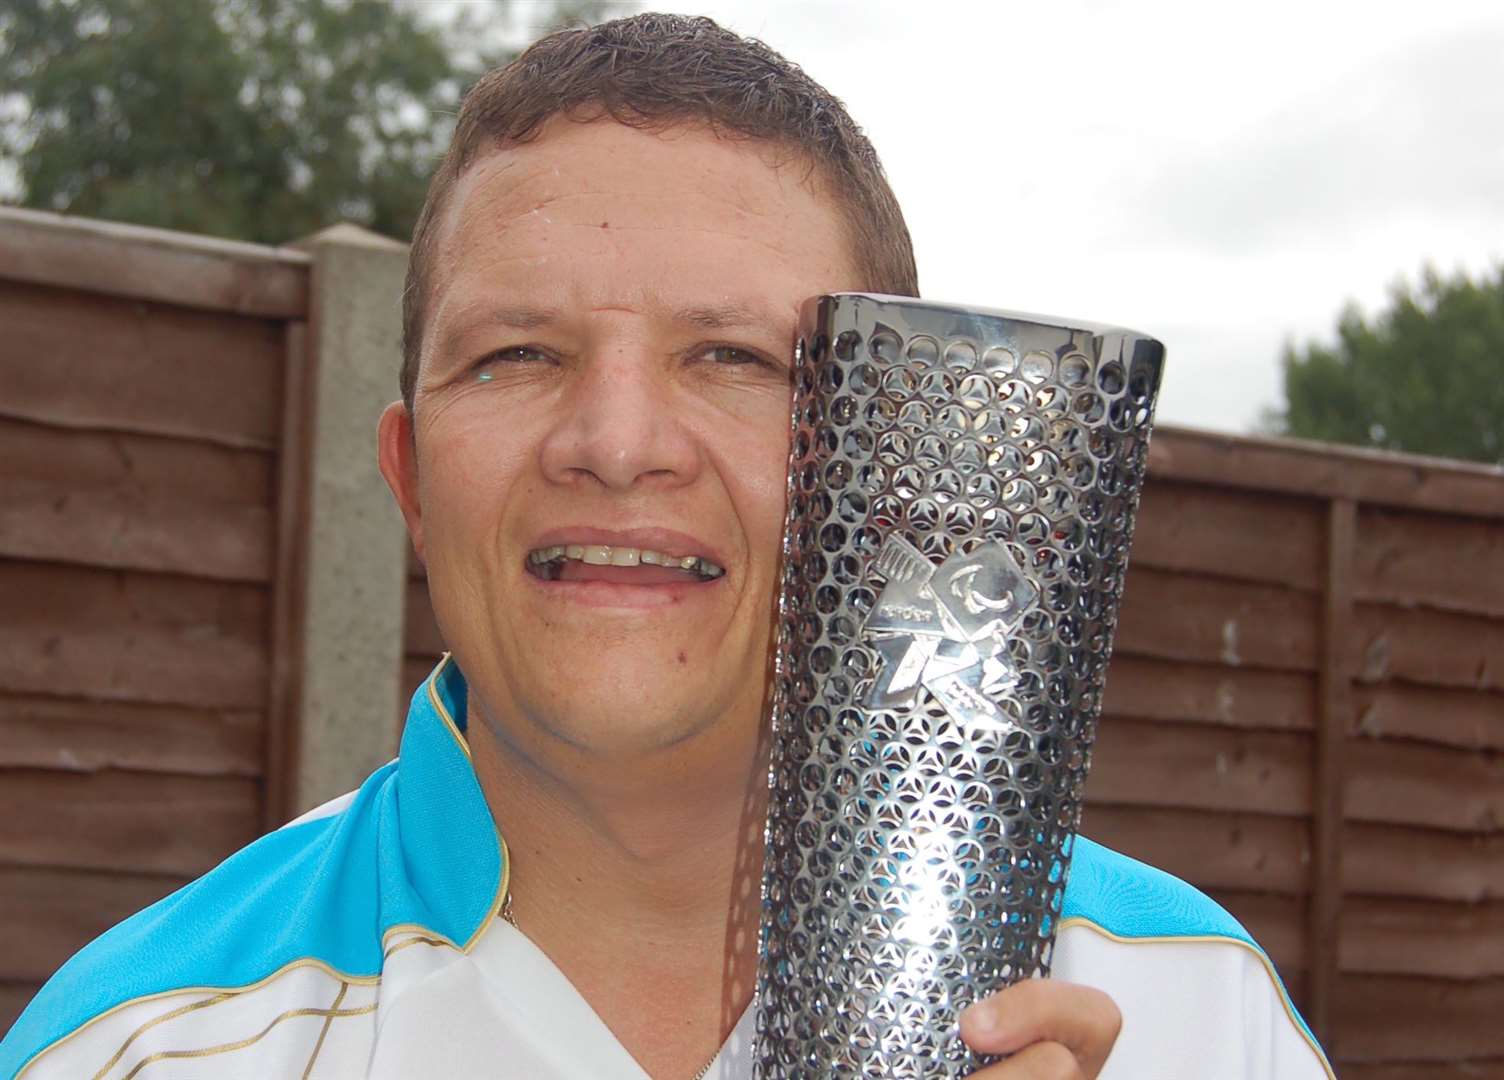 Mr Hardisty carried the Paralympic torch in 2012